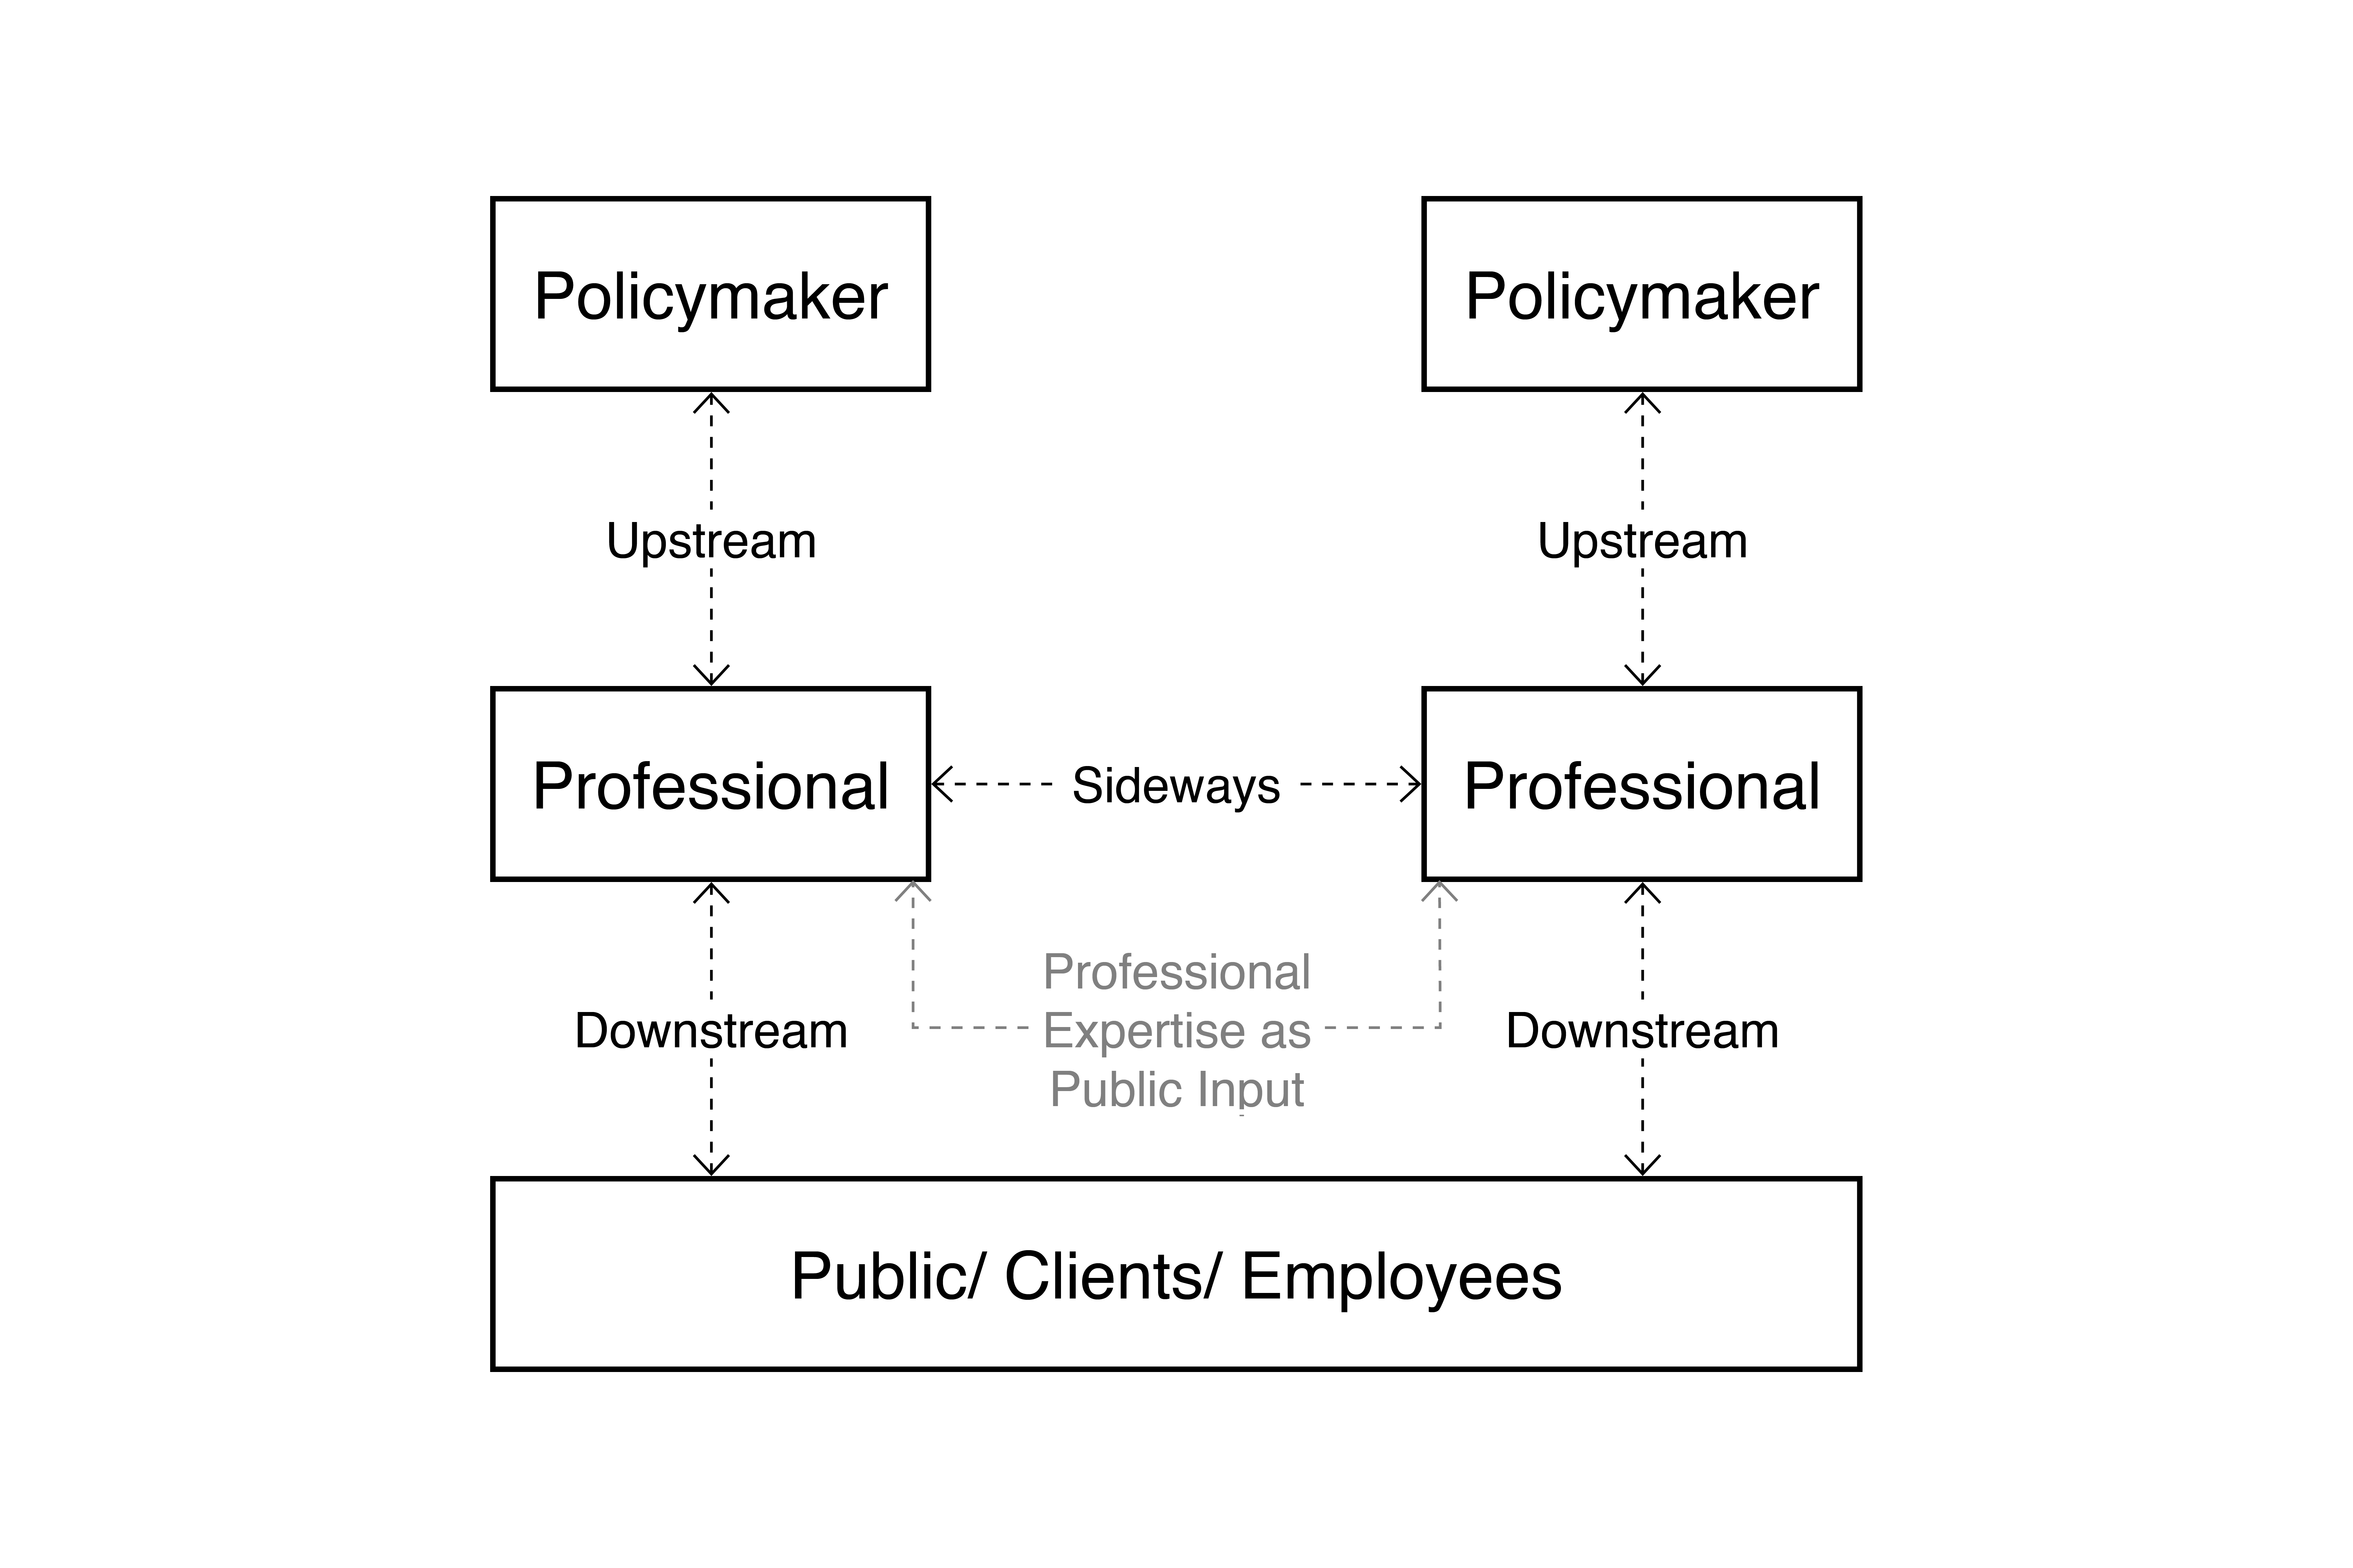 Figure 2: Professionals Collaborating Through Middle-Out Actions (Adapted from Janda and Parag 2013)